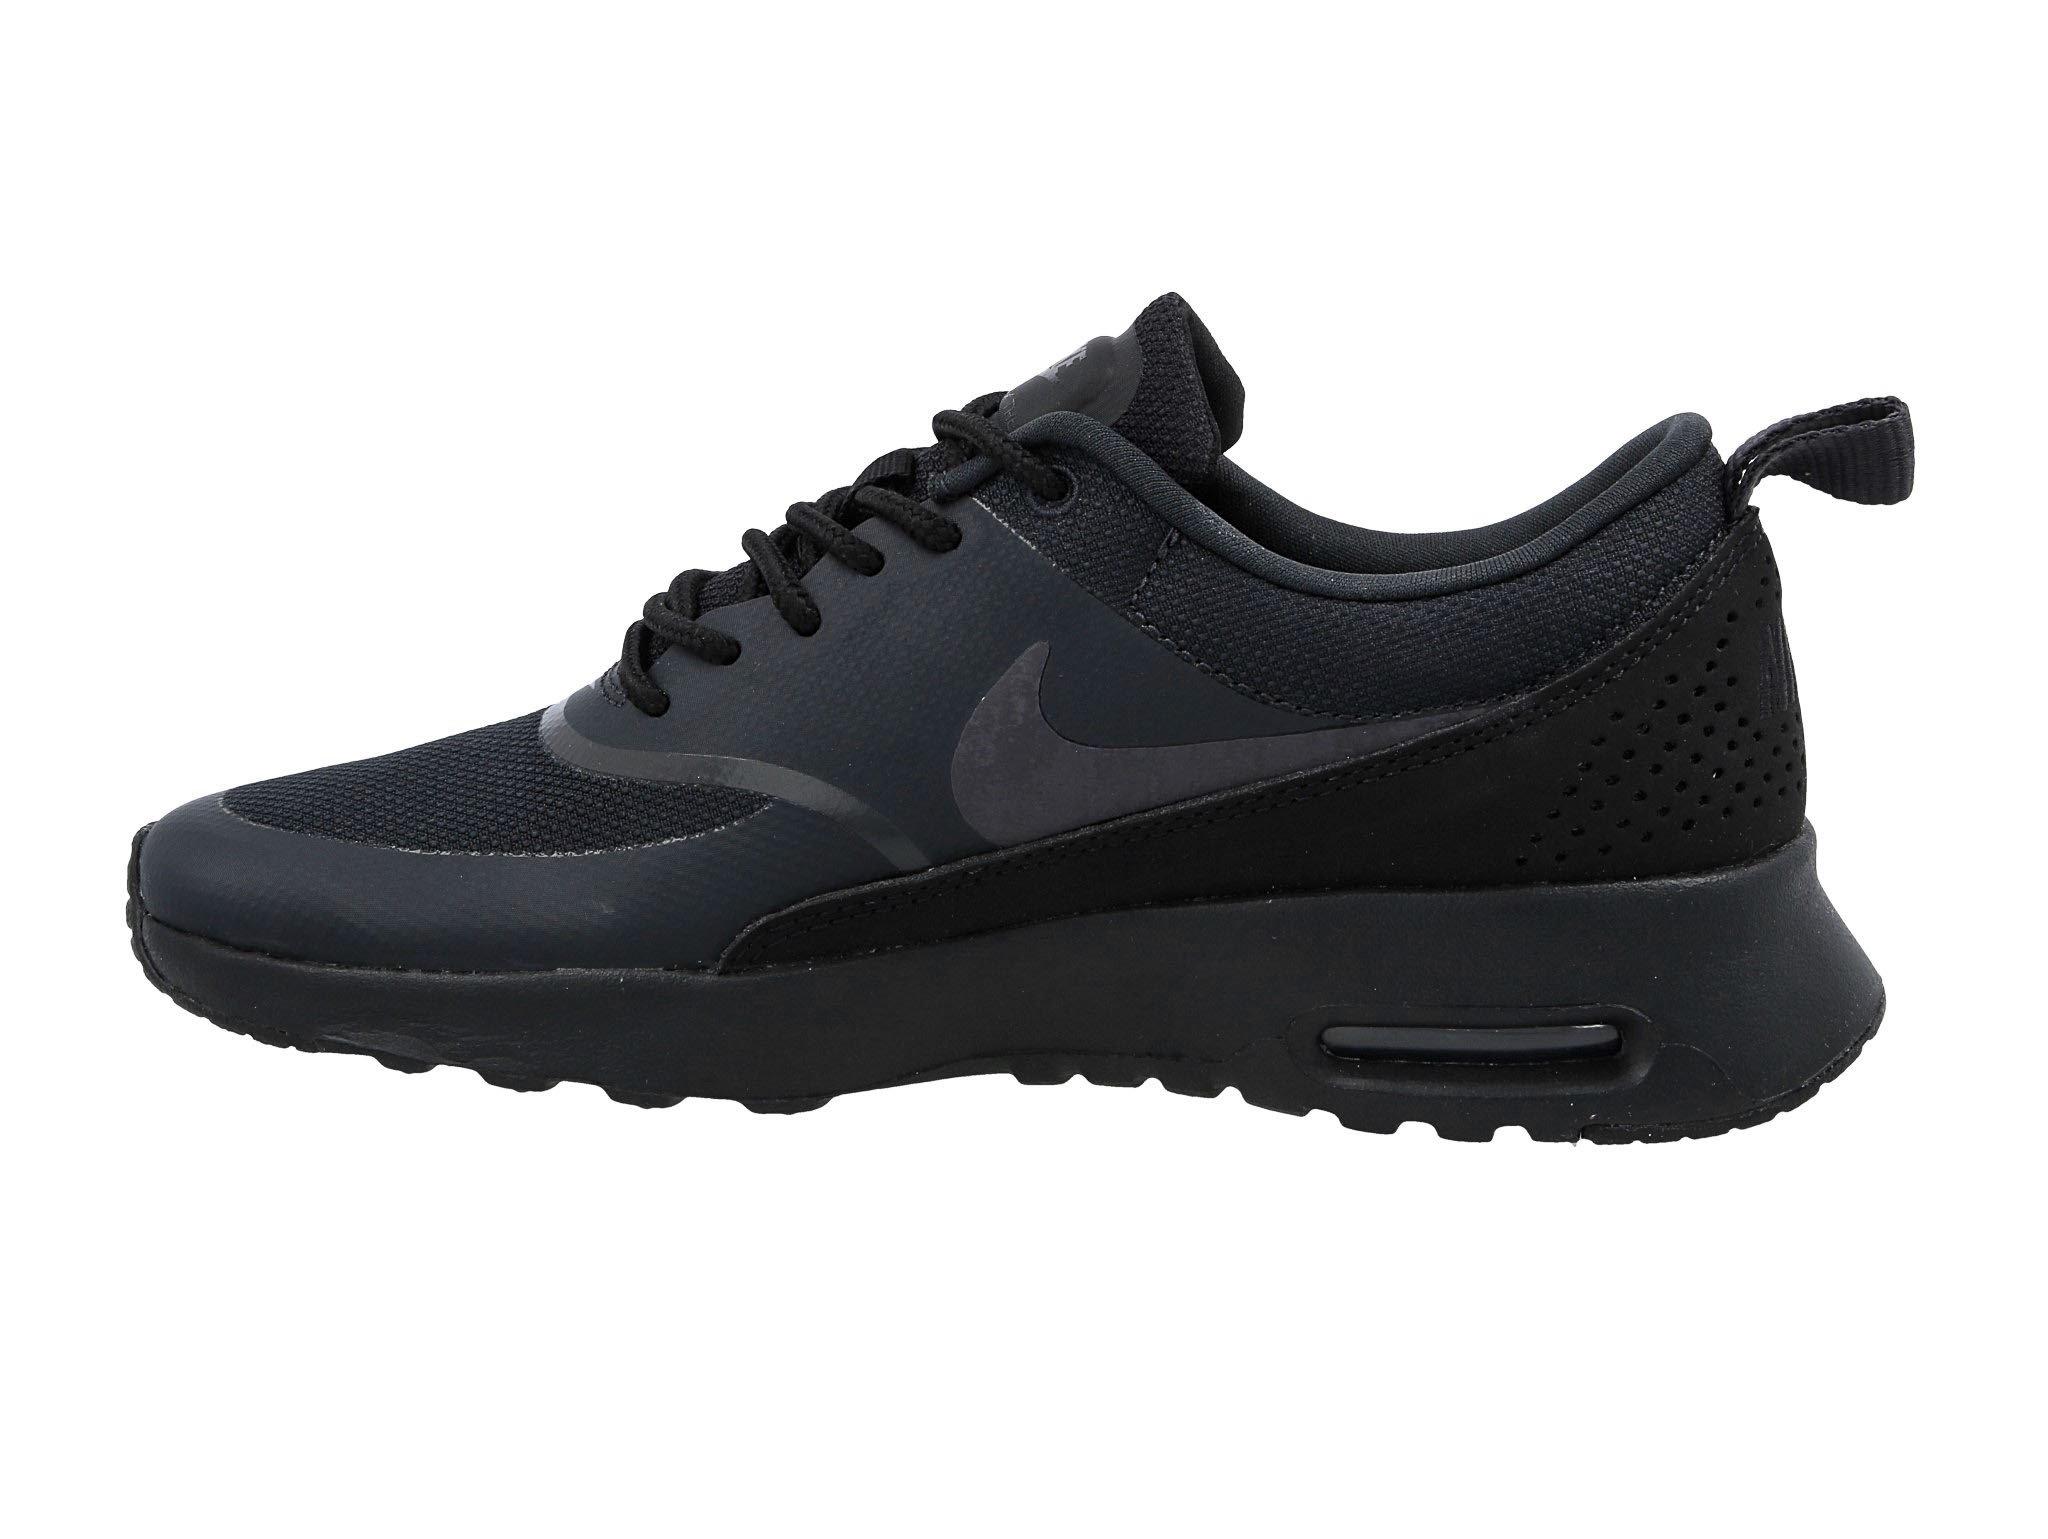 Nike Air Max Thea in schwarz 599409 036 | everysize